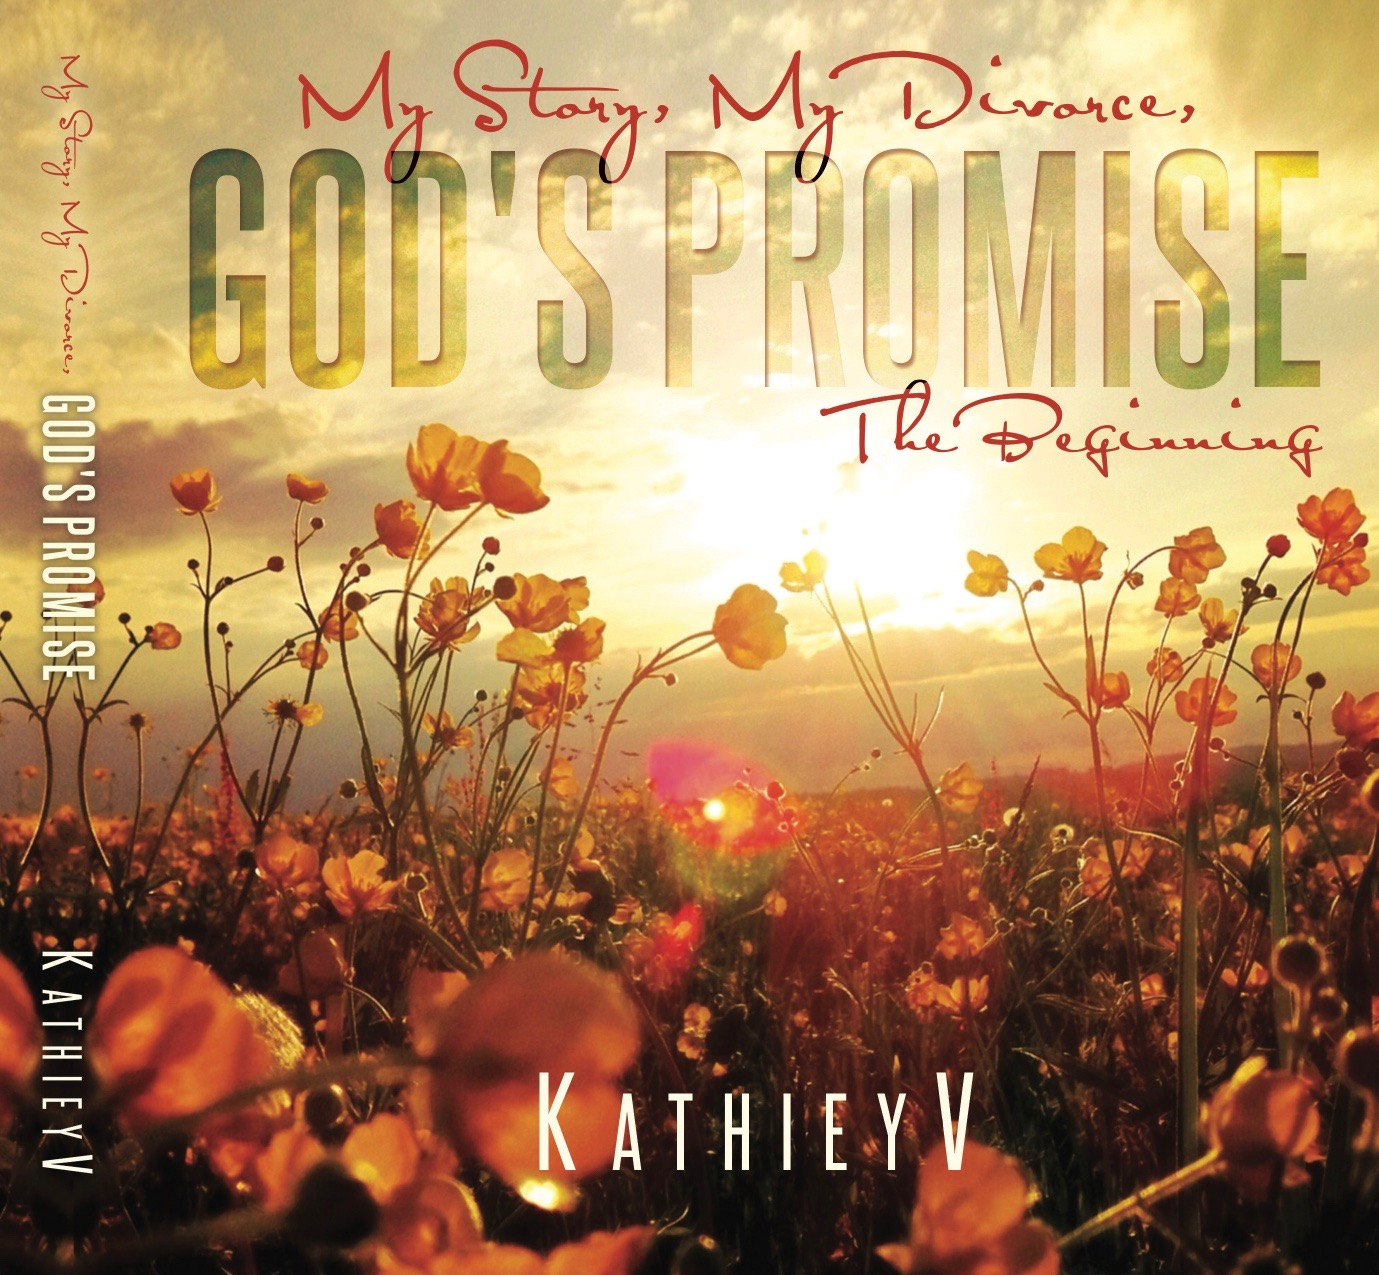 My Story My Divorce God's Promise.  The Beginning